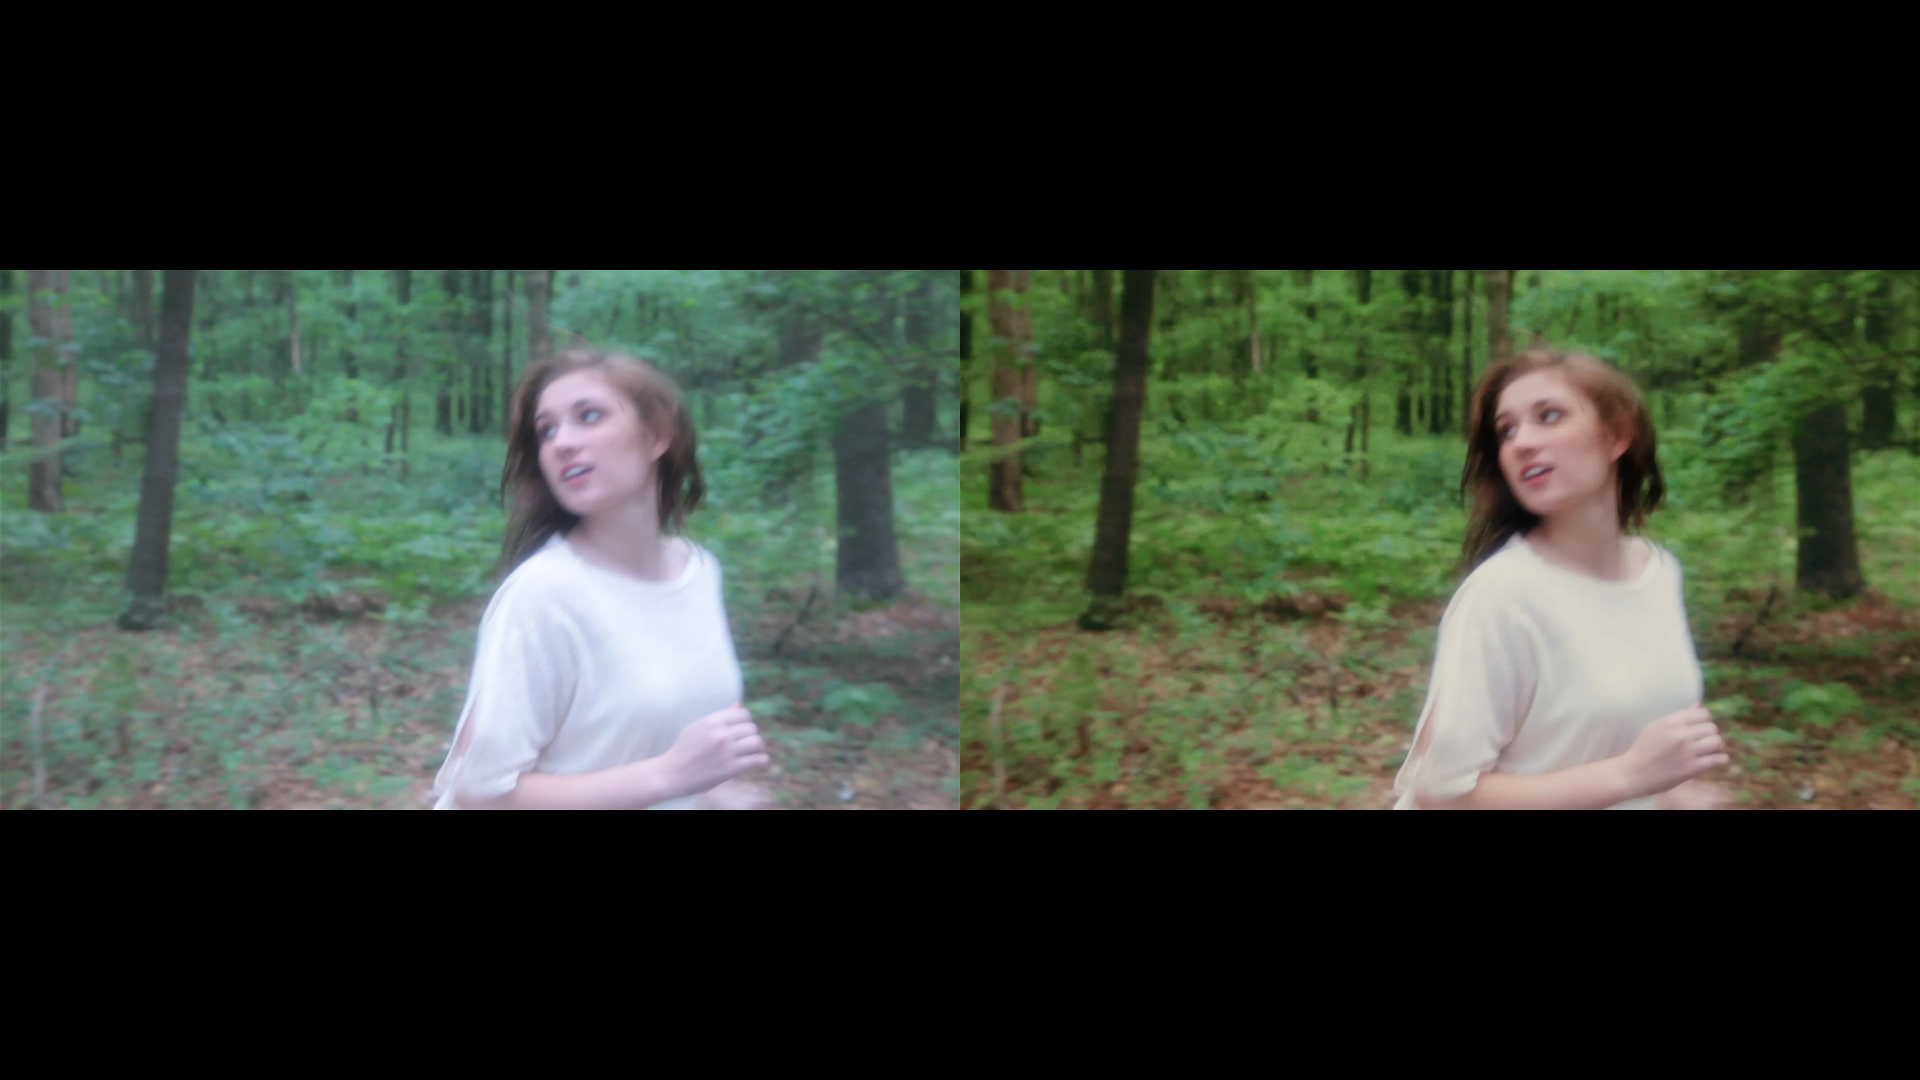 Color grading comparison screenshots from Geena Matuson's (@geenamatuson) short film 'My Big Bad Wolf' (2013).